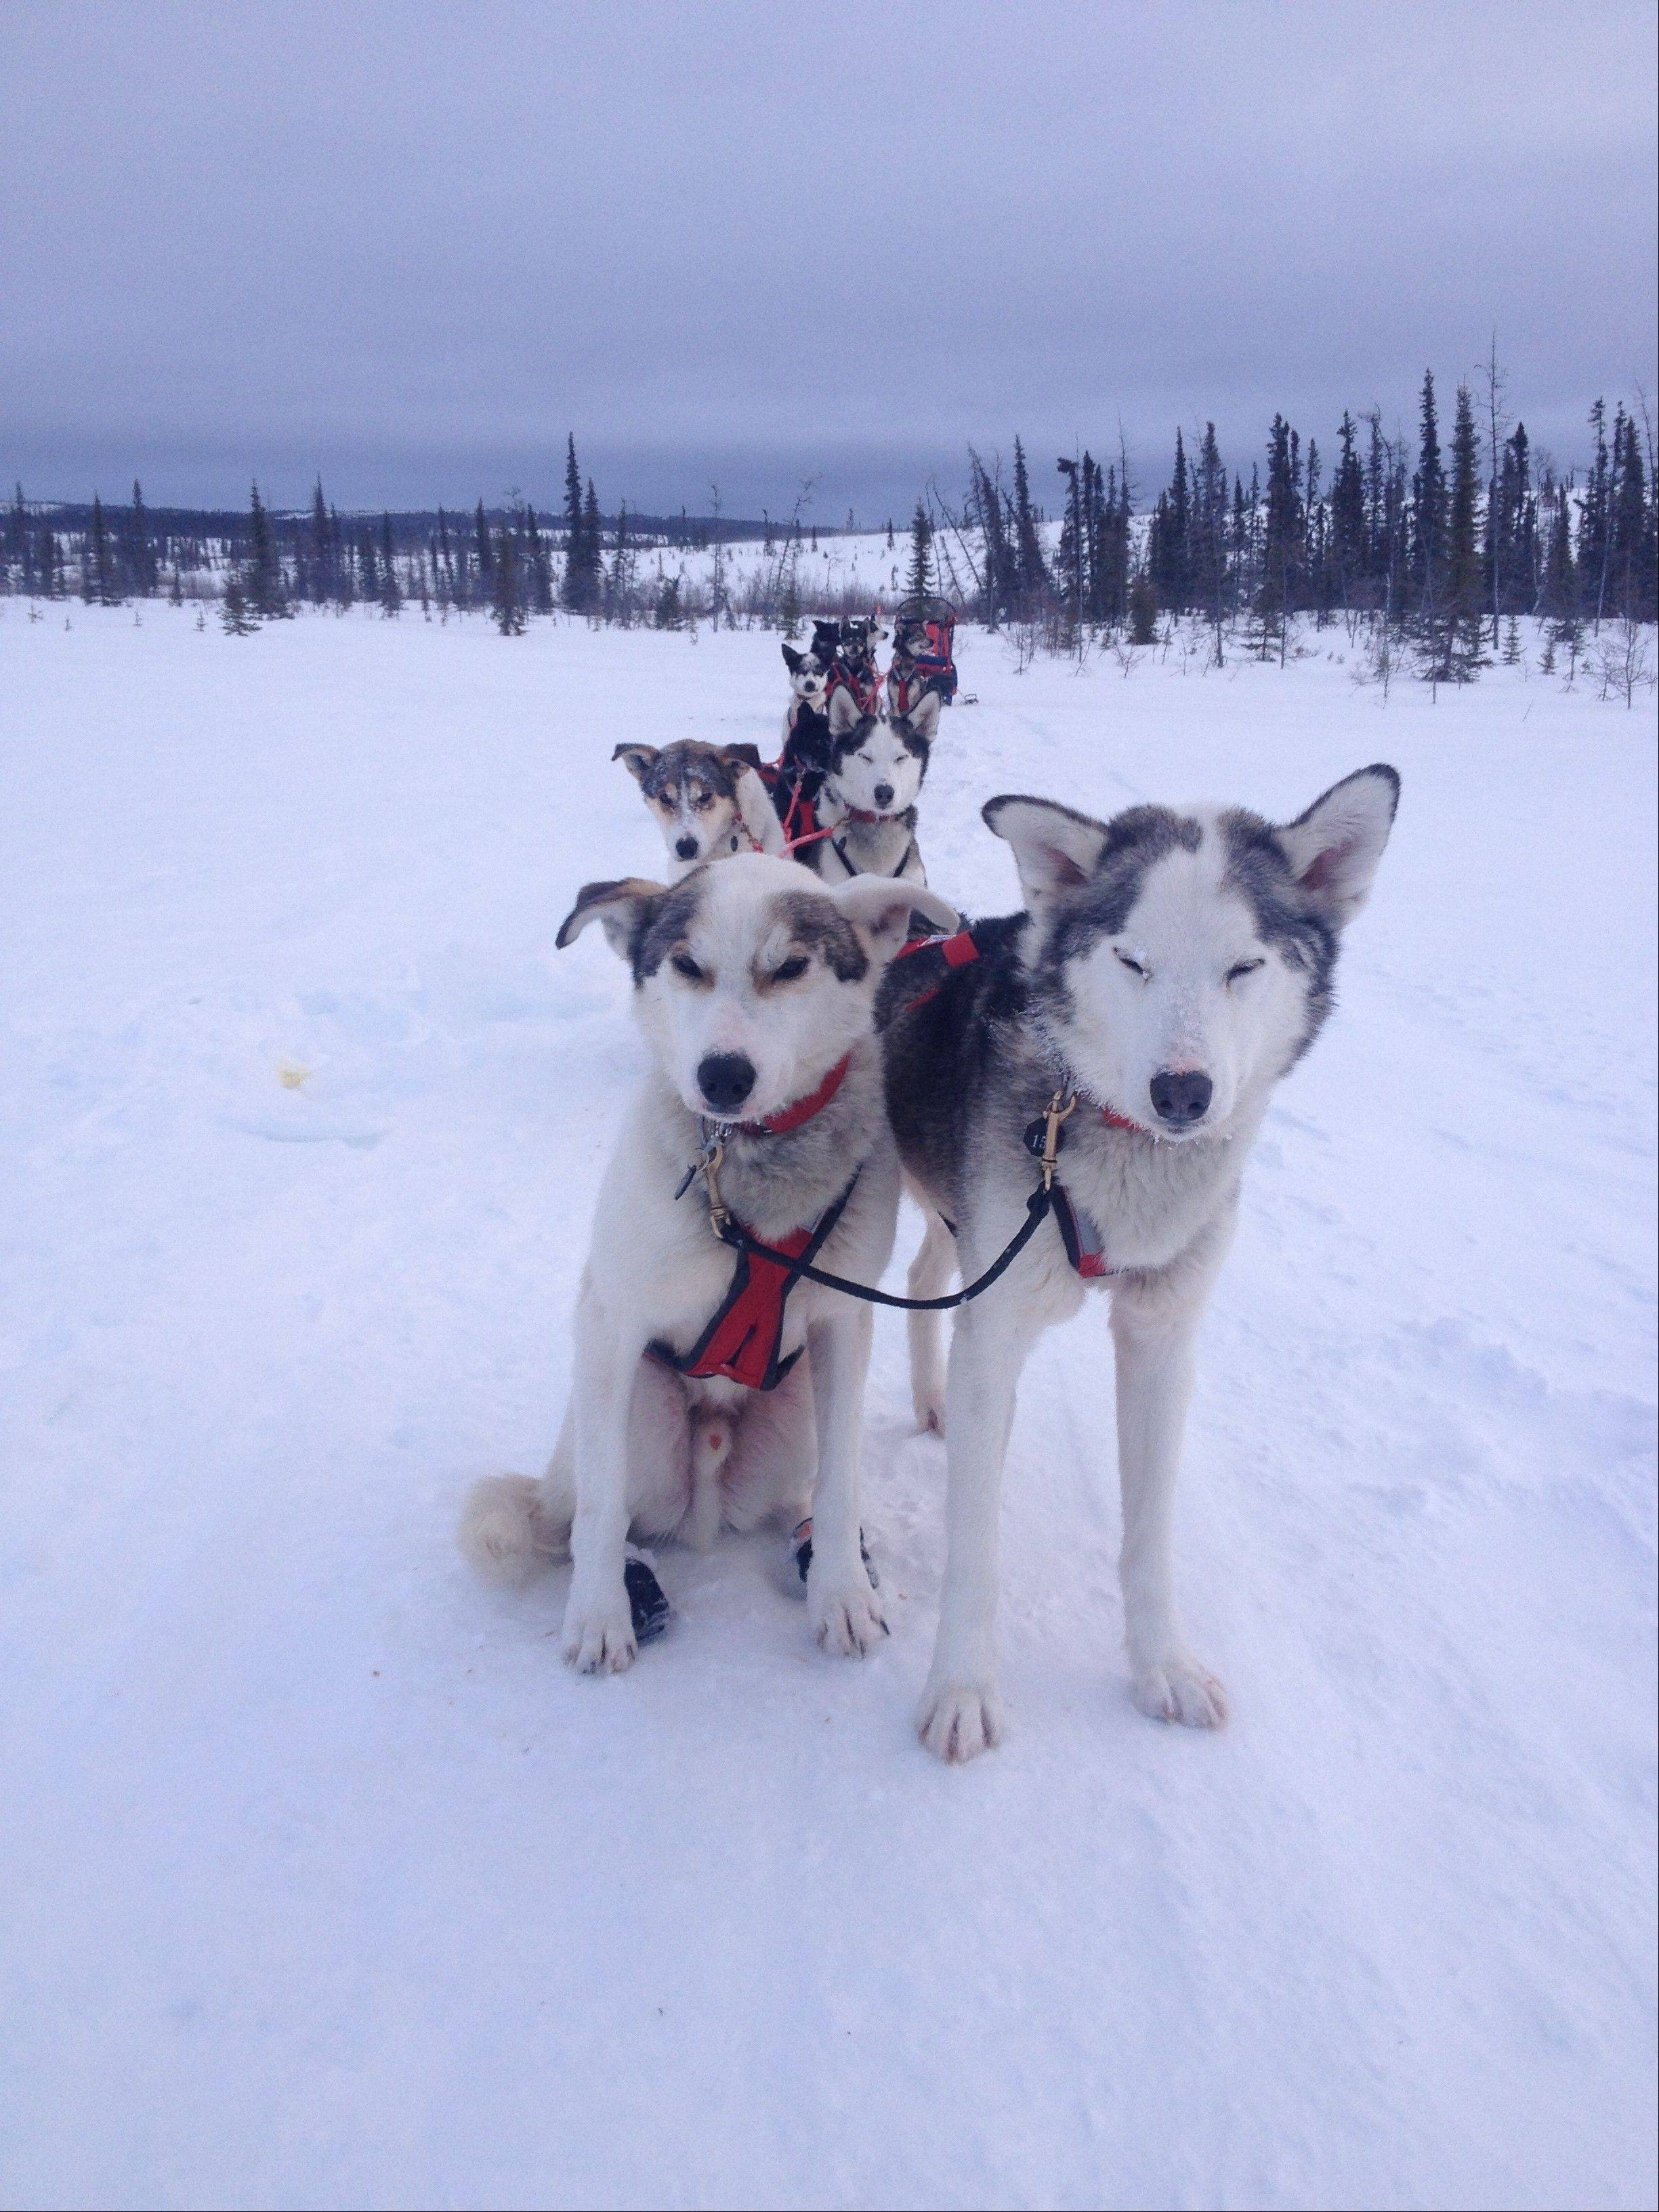 Bejna's dog sled team takes a rest during training. Preparing for the Iditarod takes months and is like training to run a marathon, Bejna said.